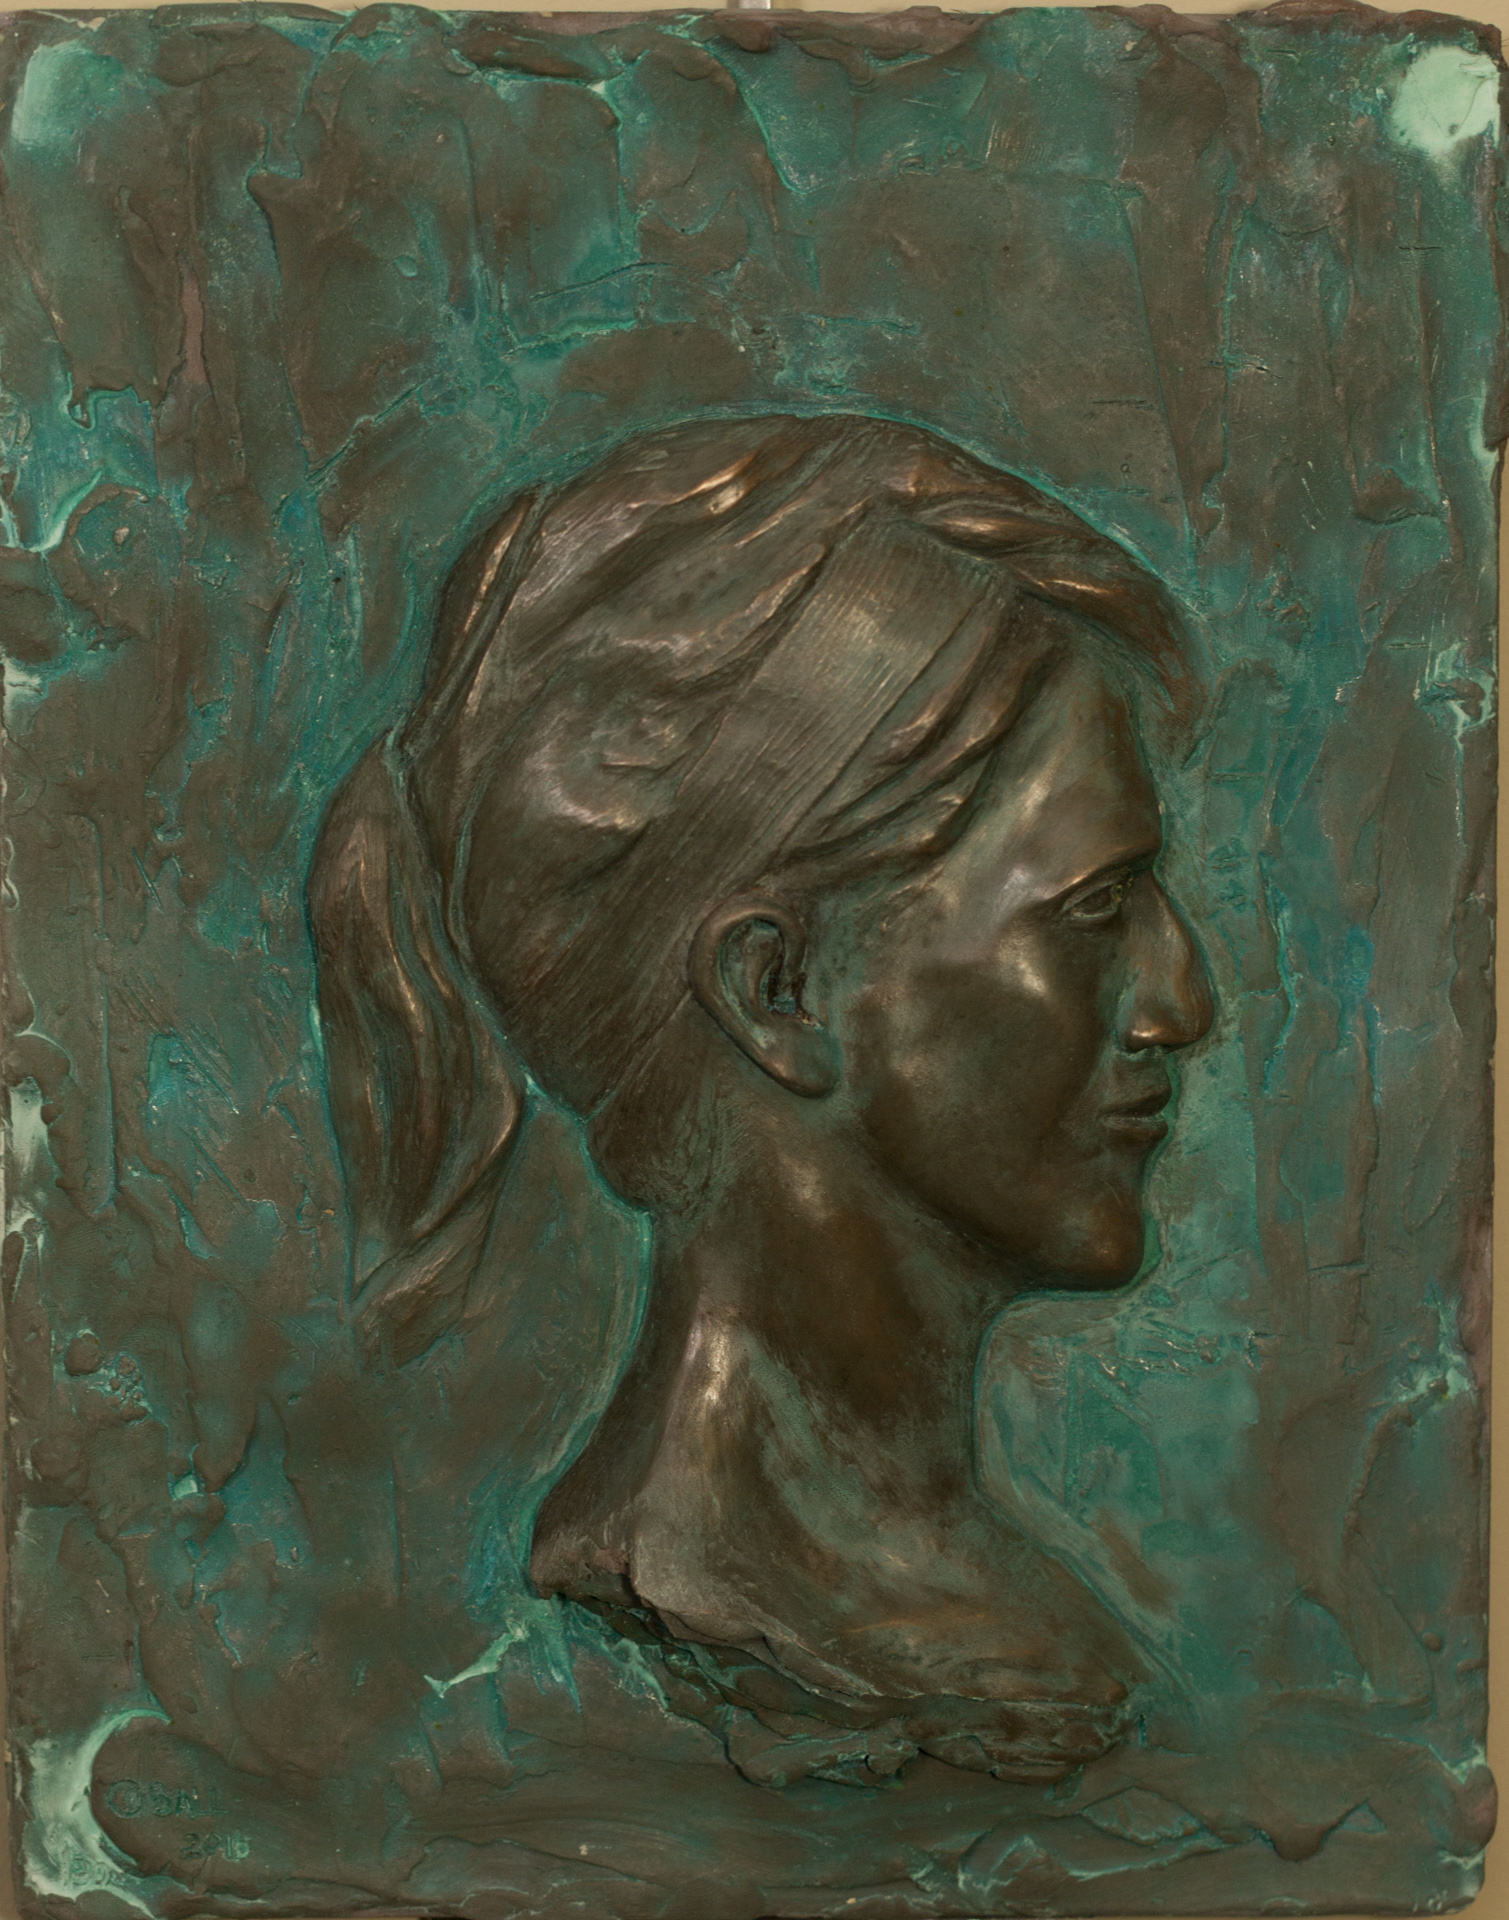 Emily (2016) FMG Bronze, Edition: 30, 14x11x.375in. $1,250